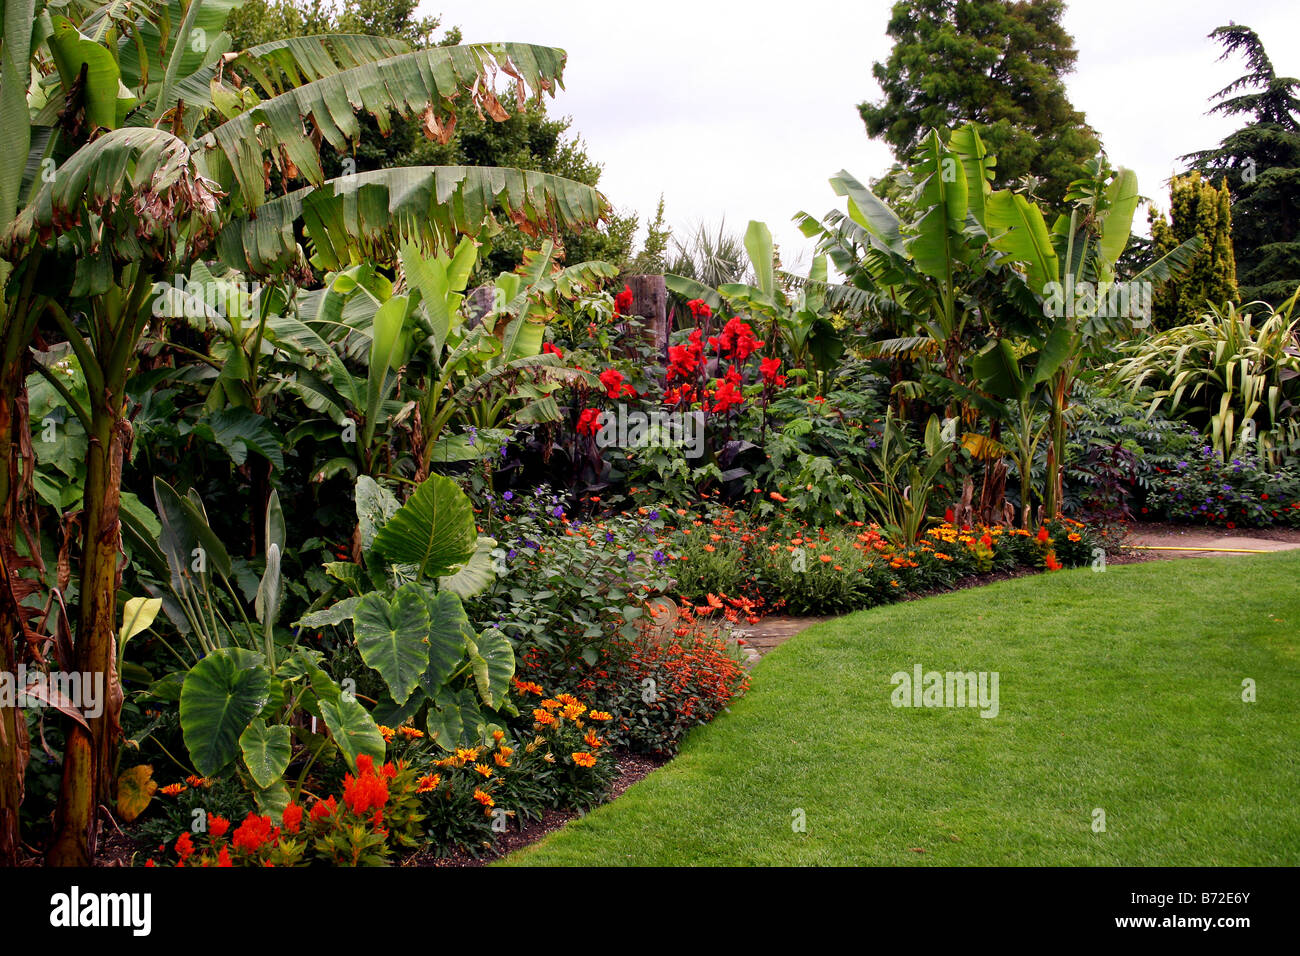 A TROPICAL BORDER WITHIN AN ENGLISH COUNTRY GARDEN. RHS HYDE HALL ESSEX UK    Stock